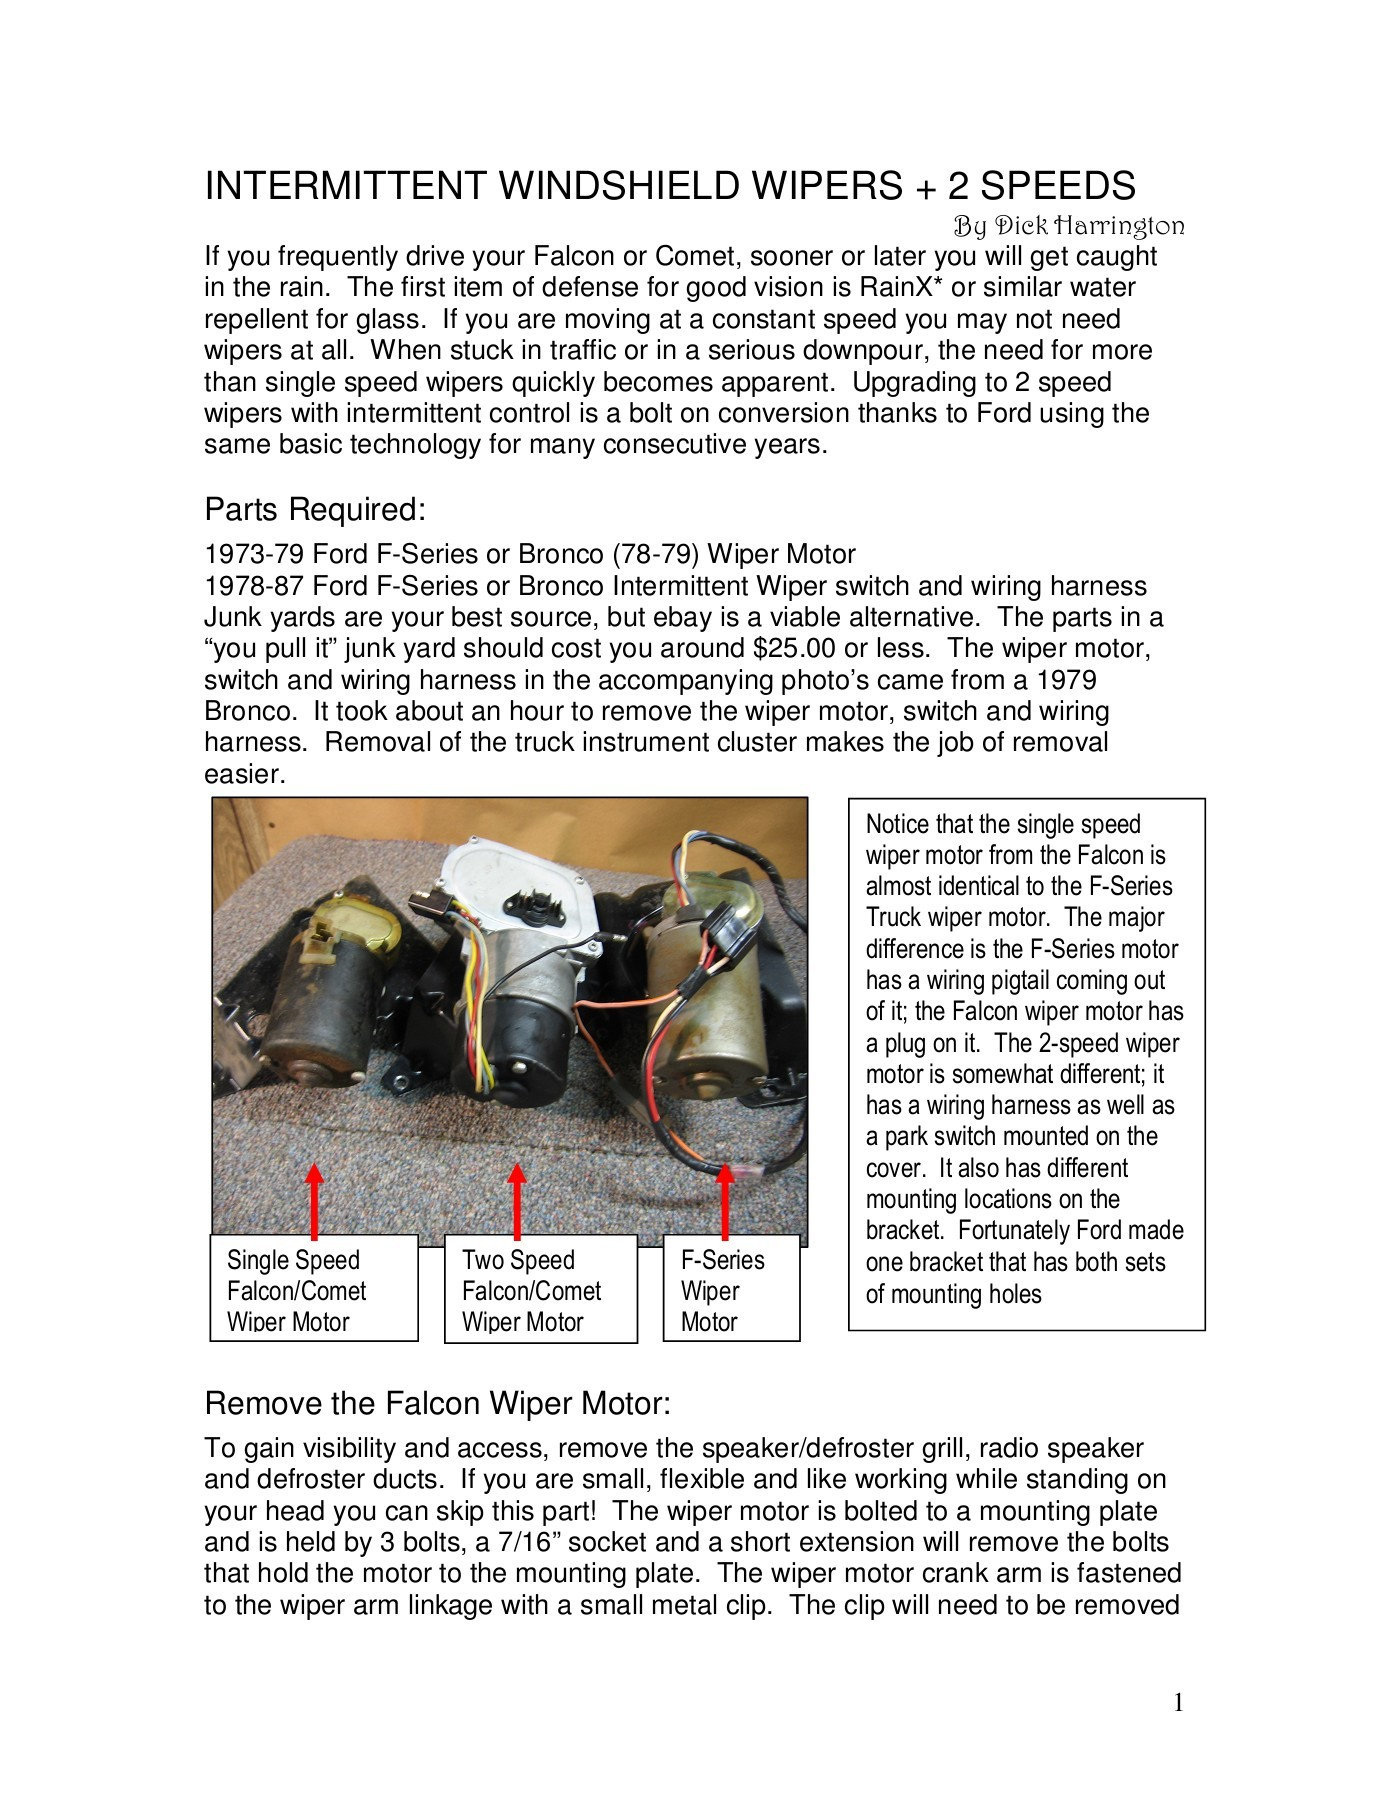 hight resolution of intermittent windshield wipers comet east club pages 1 6 text version fliphtml5